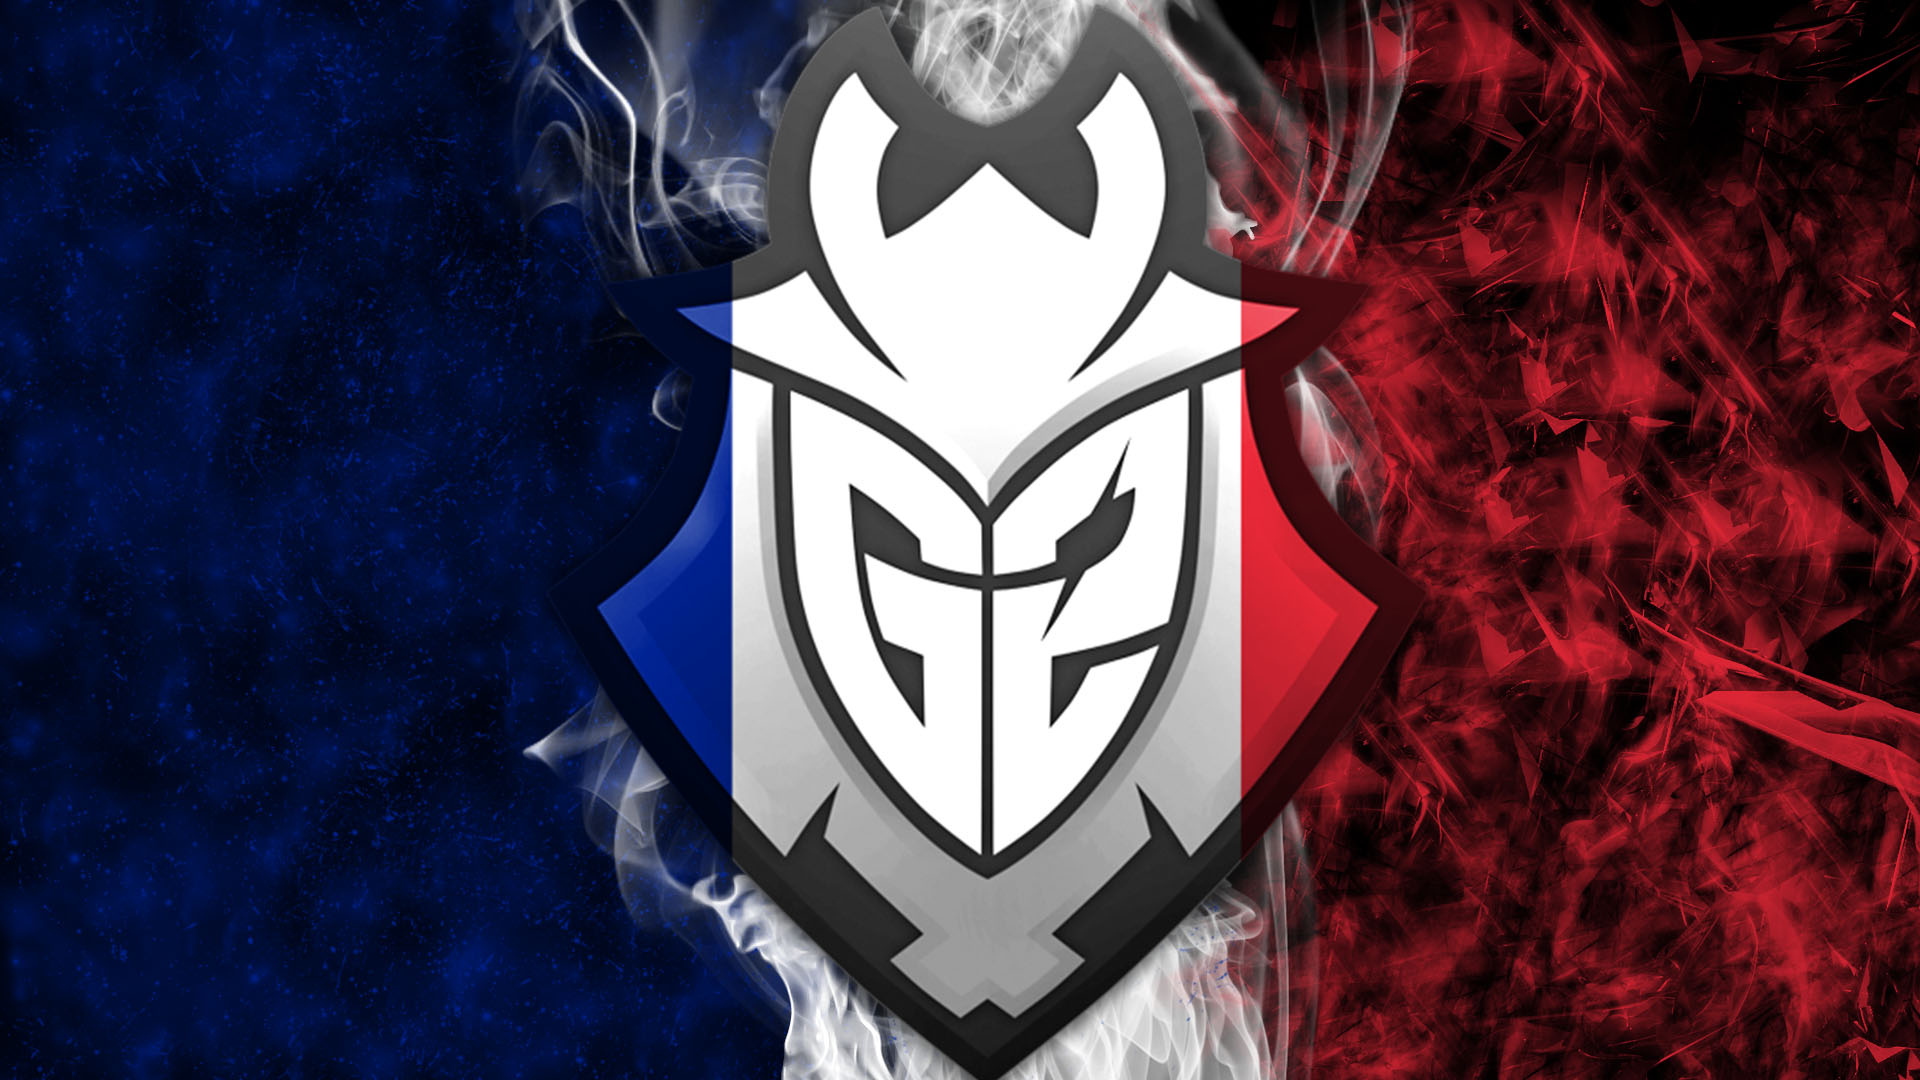 G2 wallpaper By Ronofar (vol.2)